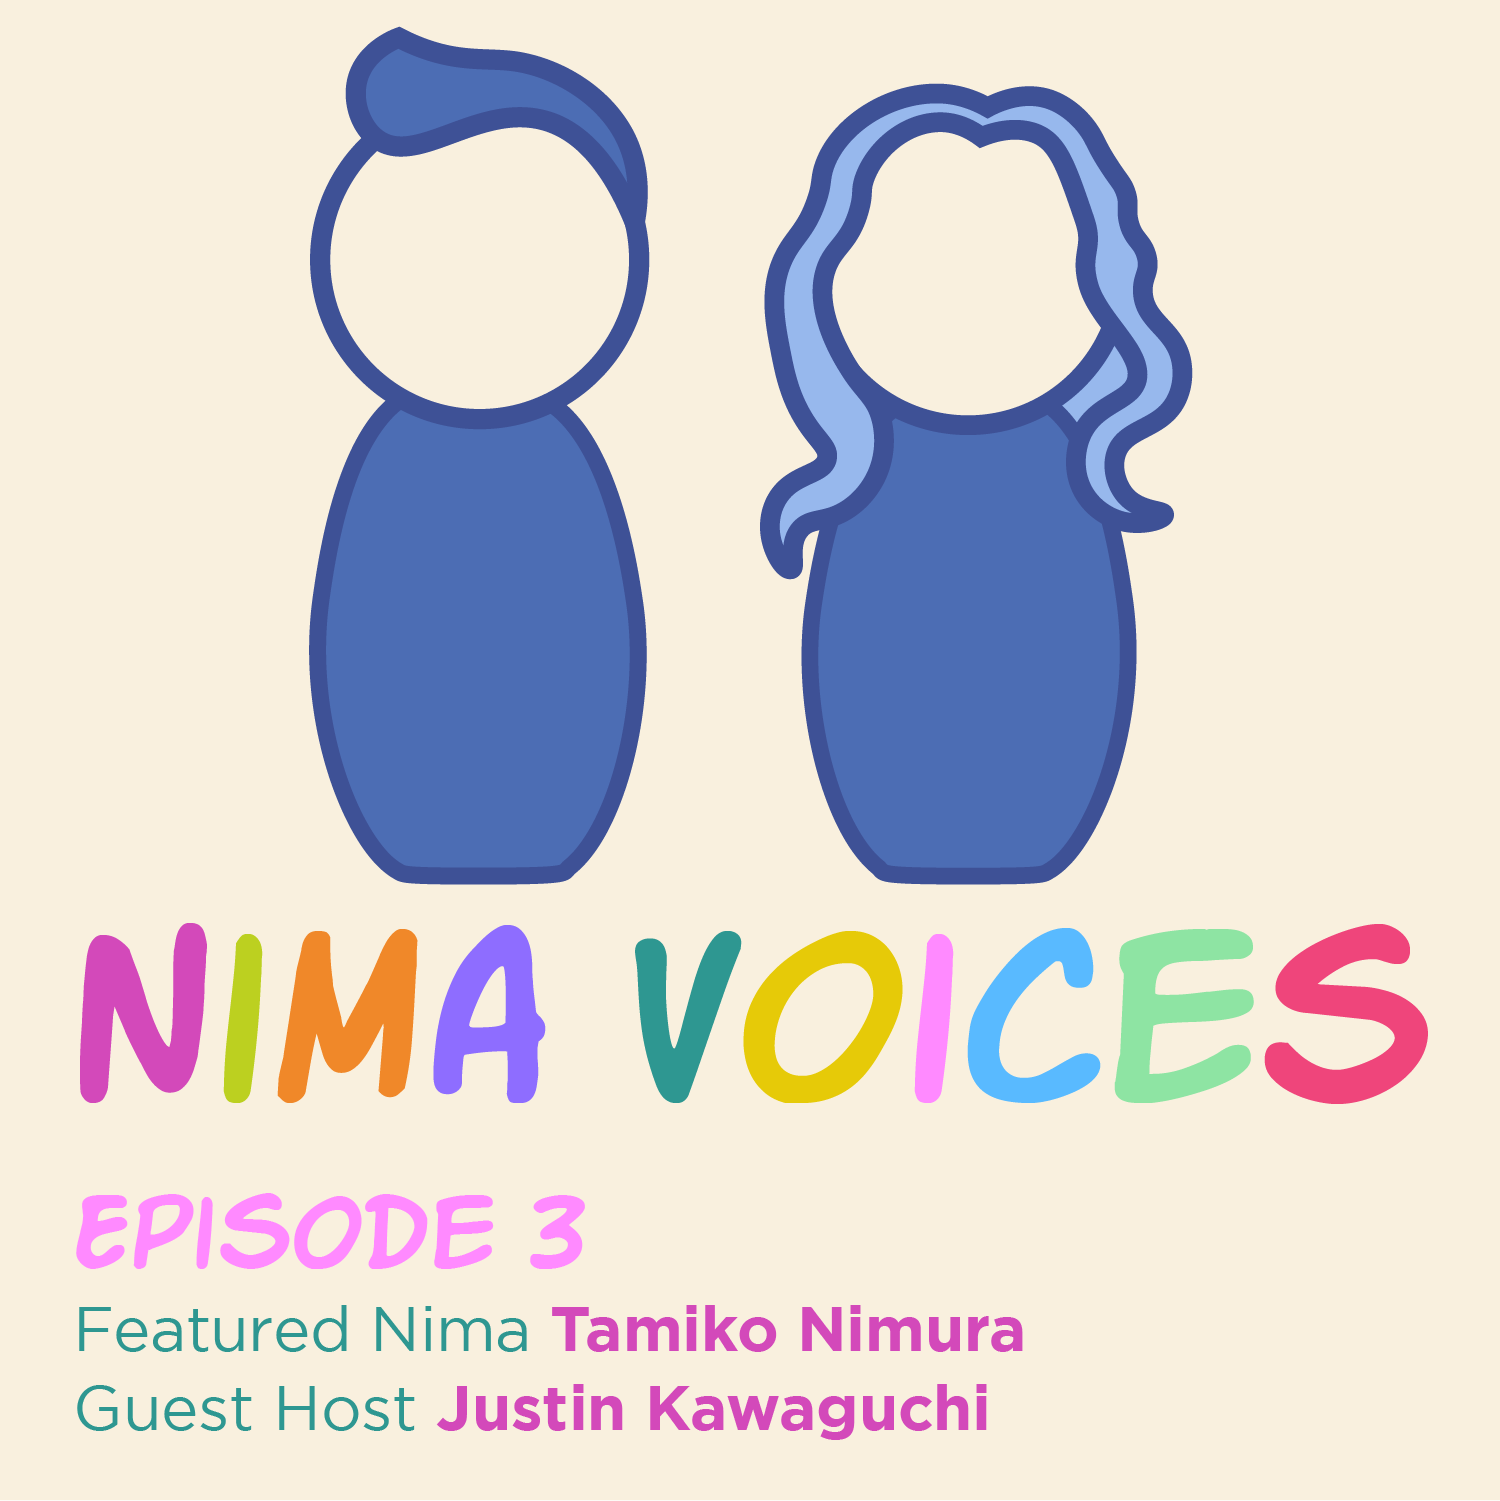 Nima Voices: Episode 3 with featured Nima: Tamiko Nimura and guest host: Justin Kawaguchi